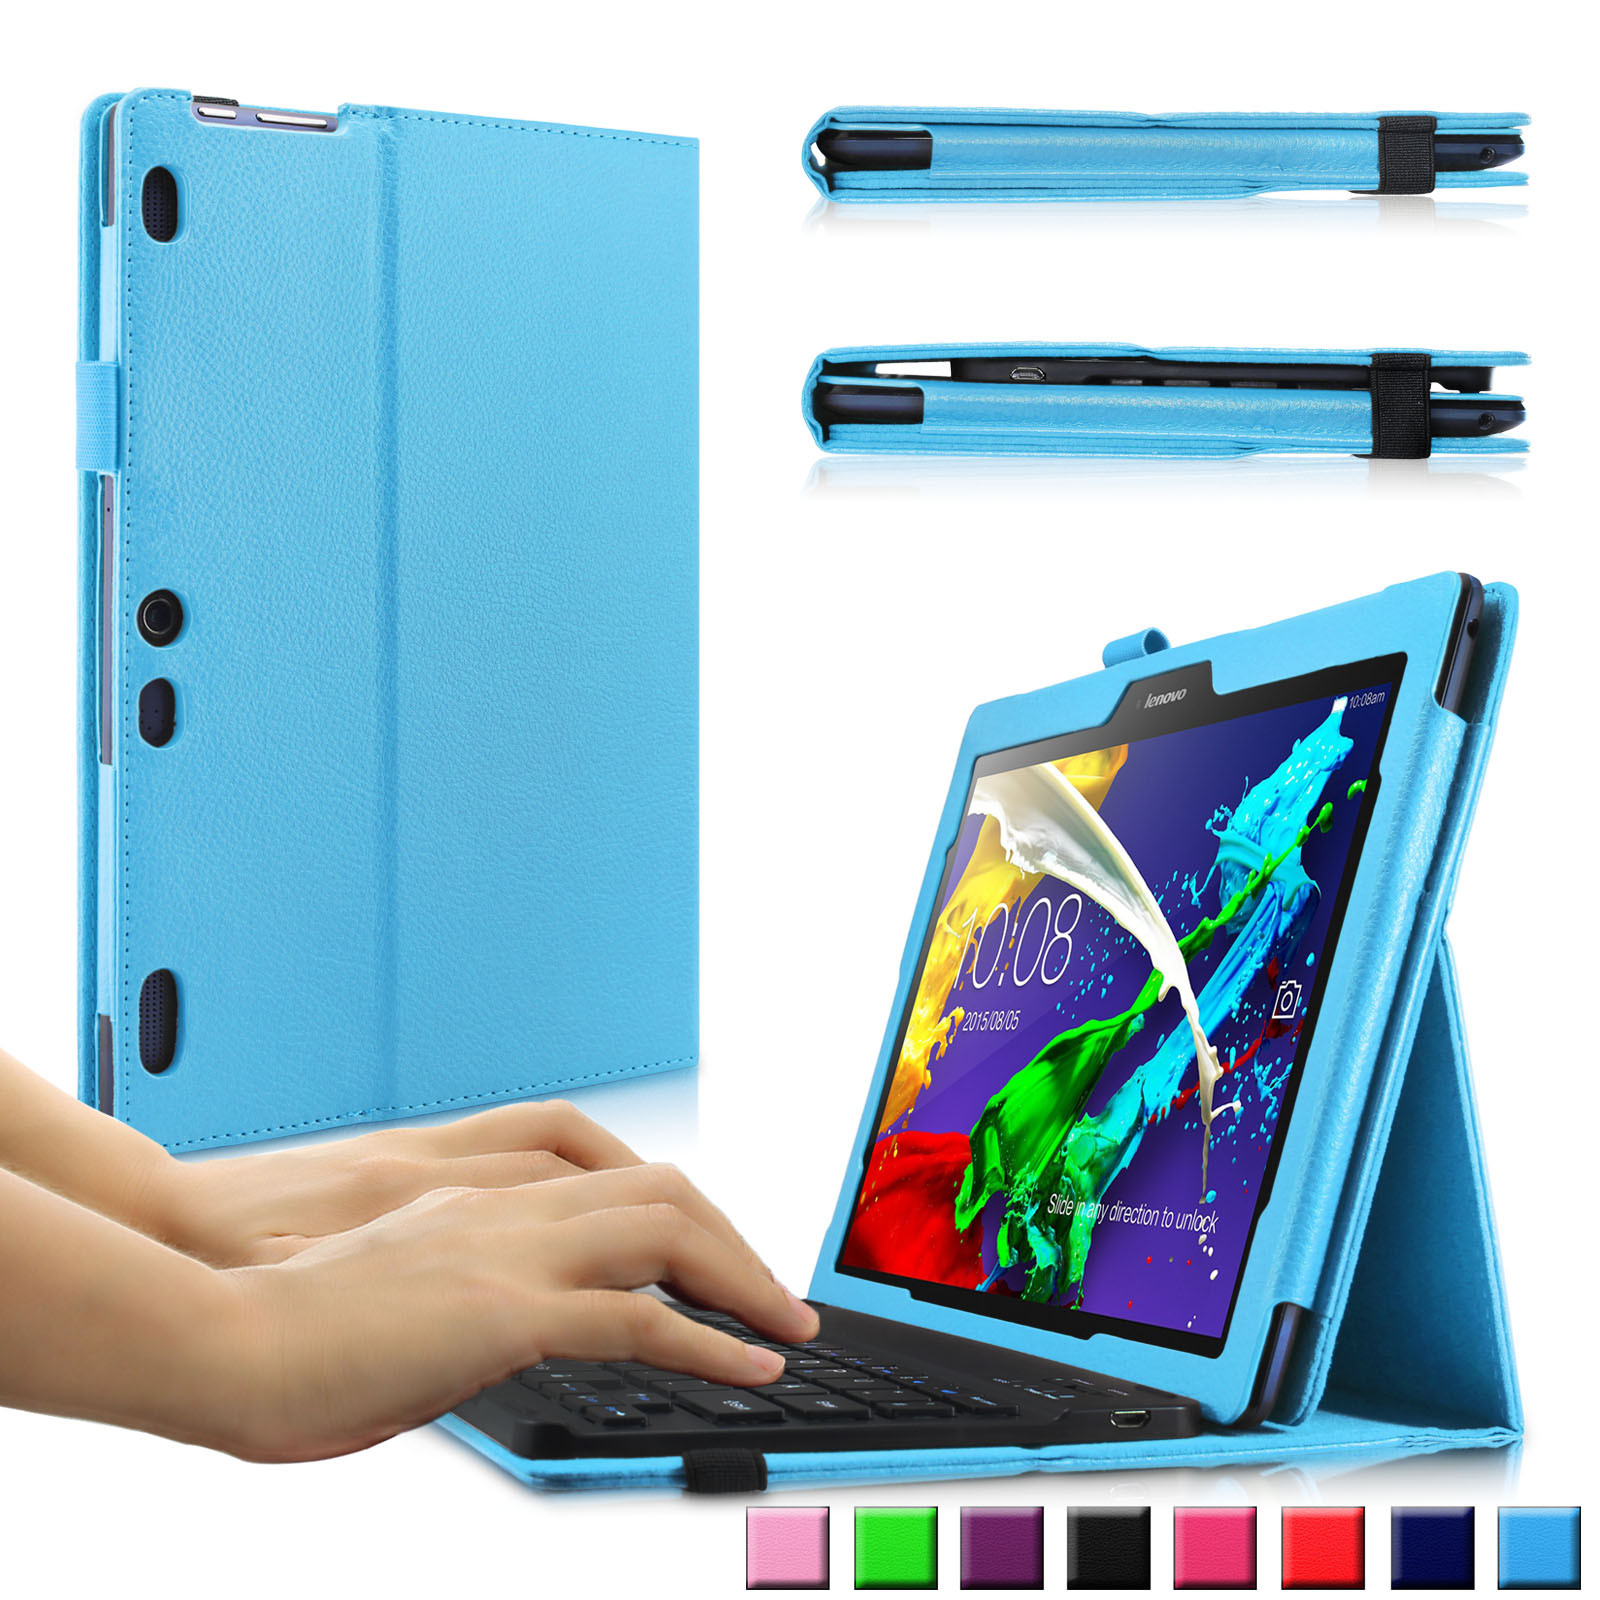 Infiland Folio PU Leather Case Cover with Magnetically Detachable Bluetooth Keyboard for Lenovo Tab 2 A10-70/A10-30 Tablet, Blue